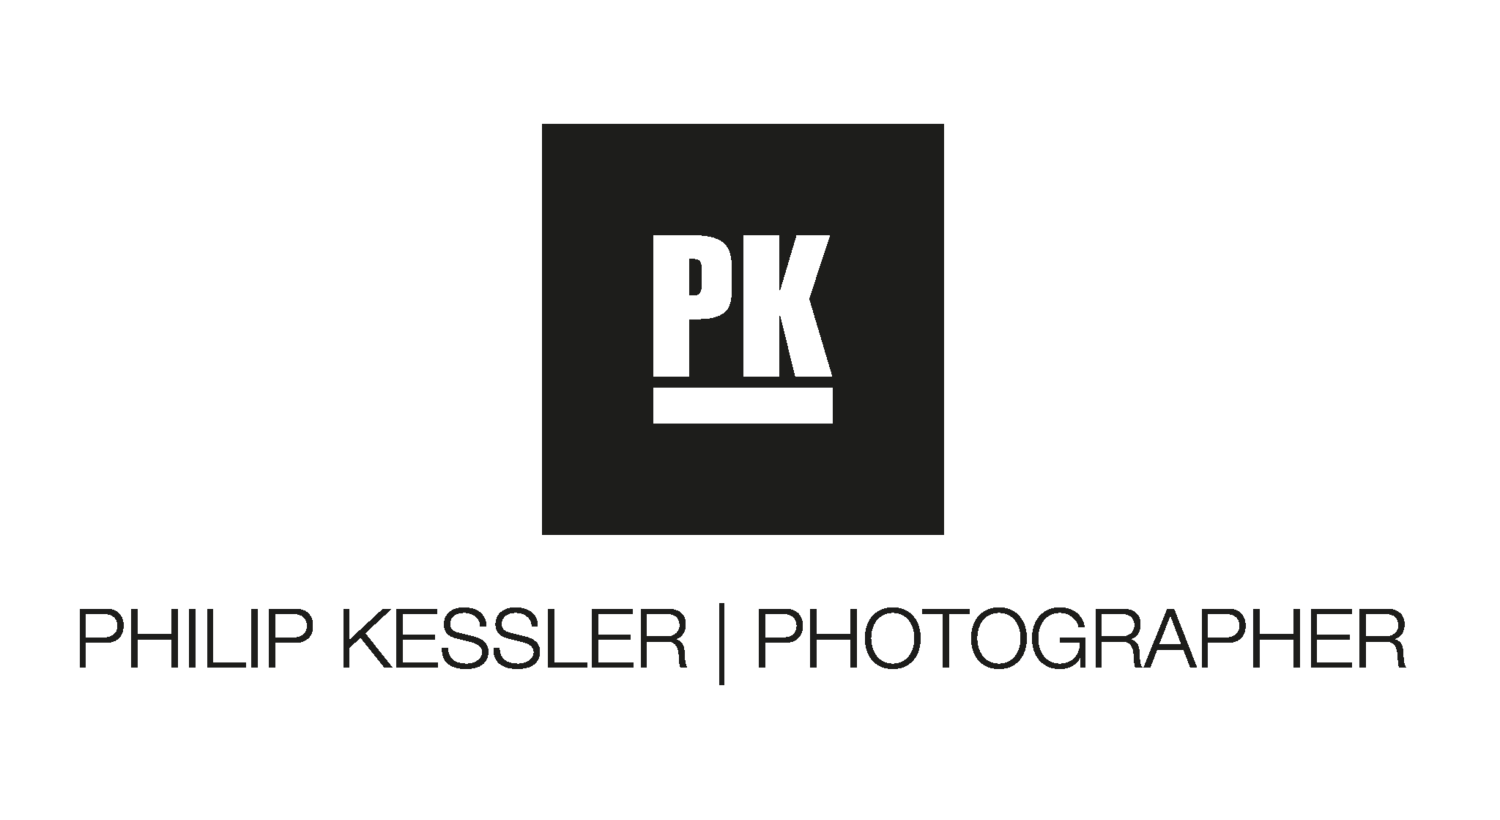 Philip Kessler - Photographer